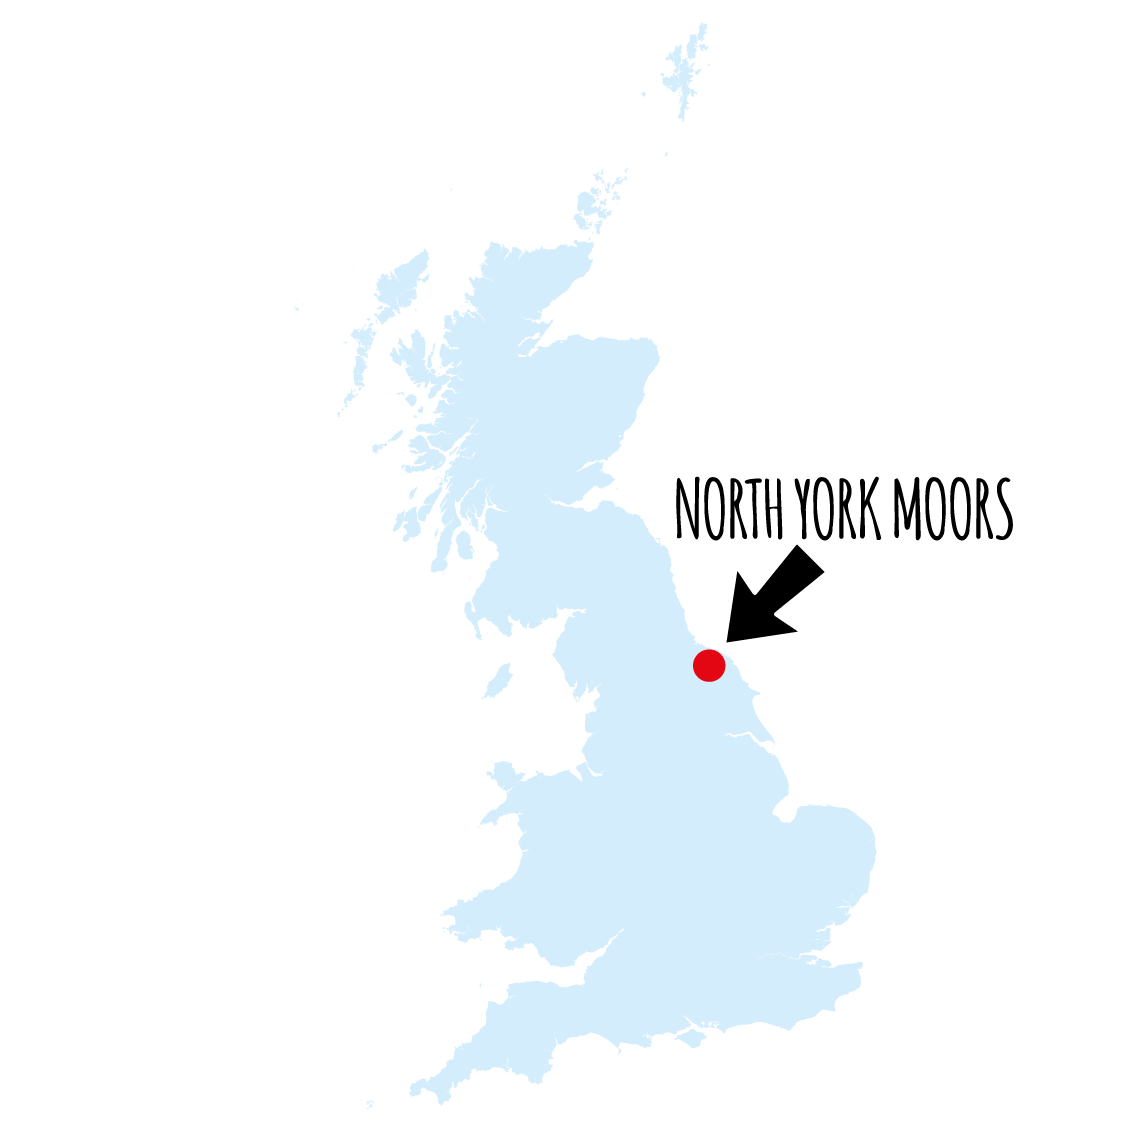 north-york-moors-map.png